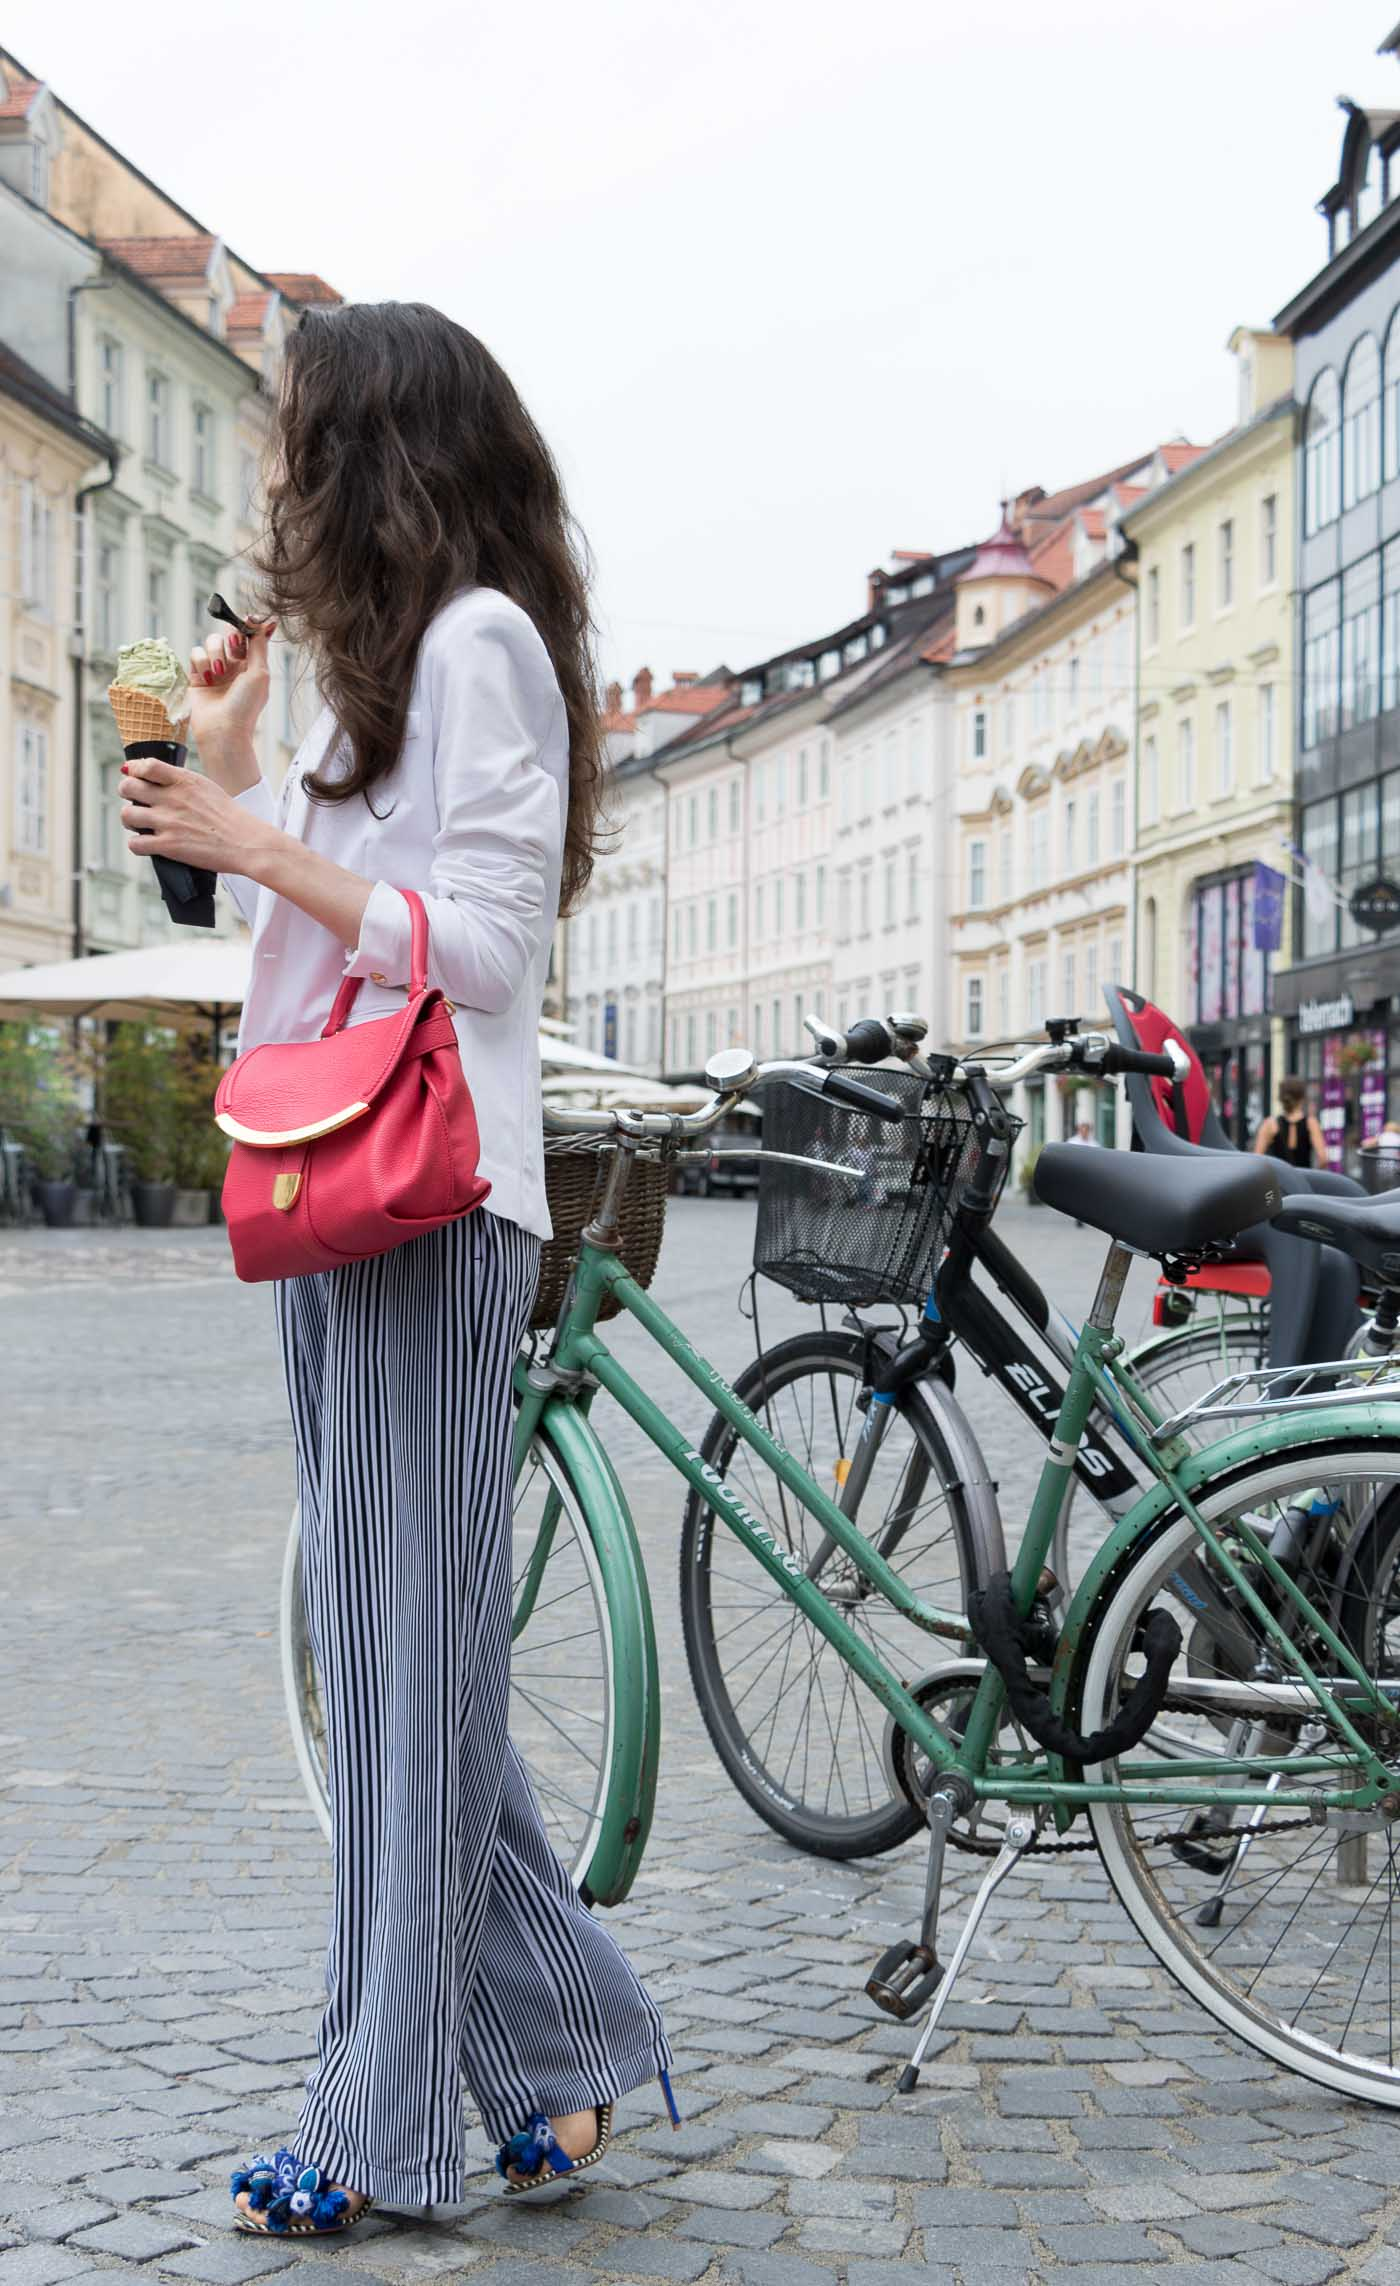 Fashion Blogger Veronika Lipar of Brunette from Wall Street eating pistachio ice cream on the street dressed in wide-leg Michael Kors trousers with stripes, white blazer, floral slip top from Stella McCartney and blue Aquazzura sandals